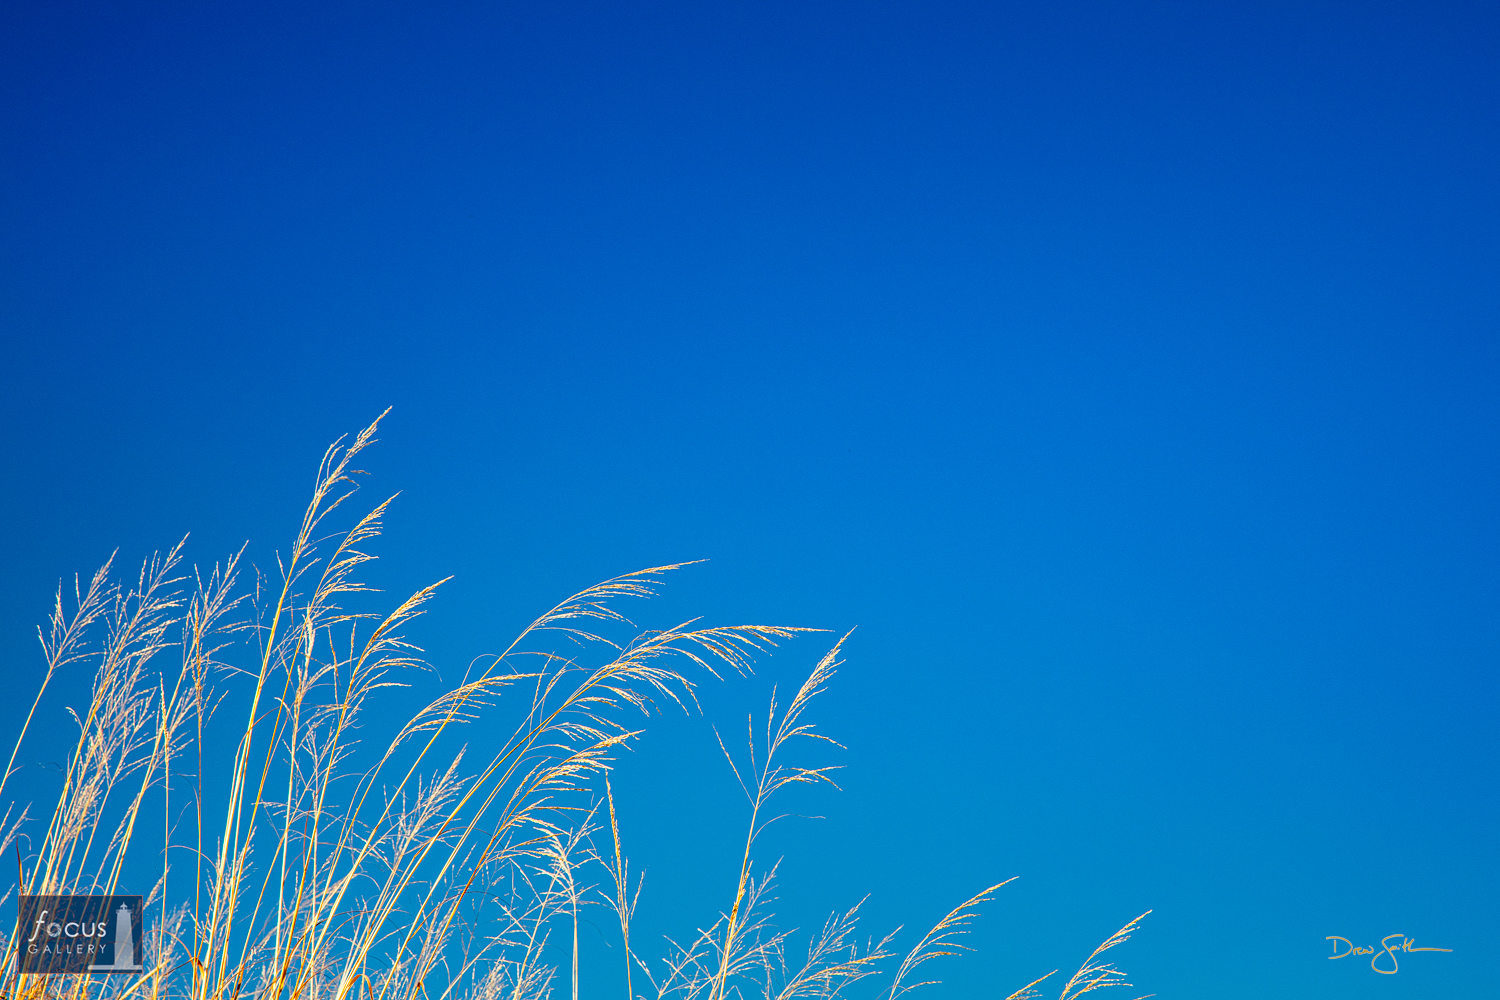 Photo © Drew Smith Beach grass and blue sky mark a perfect day in the dunes.  Taken along the Lake Michigan shoreline at Otter...